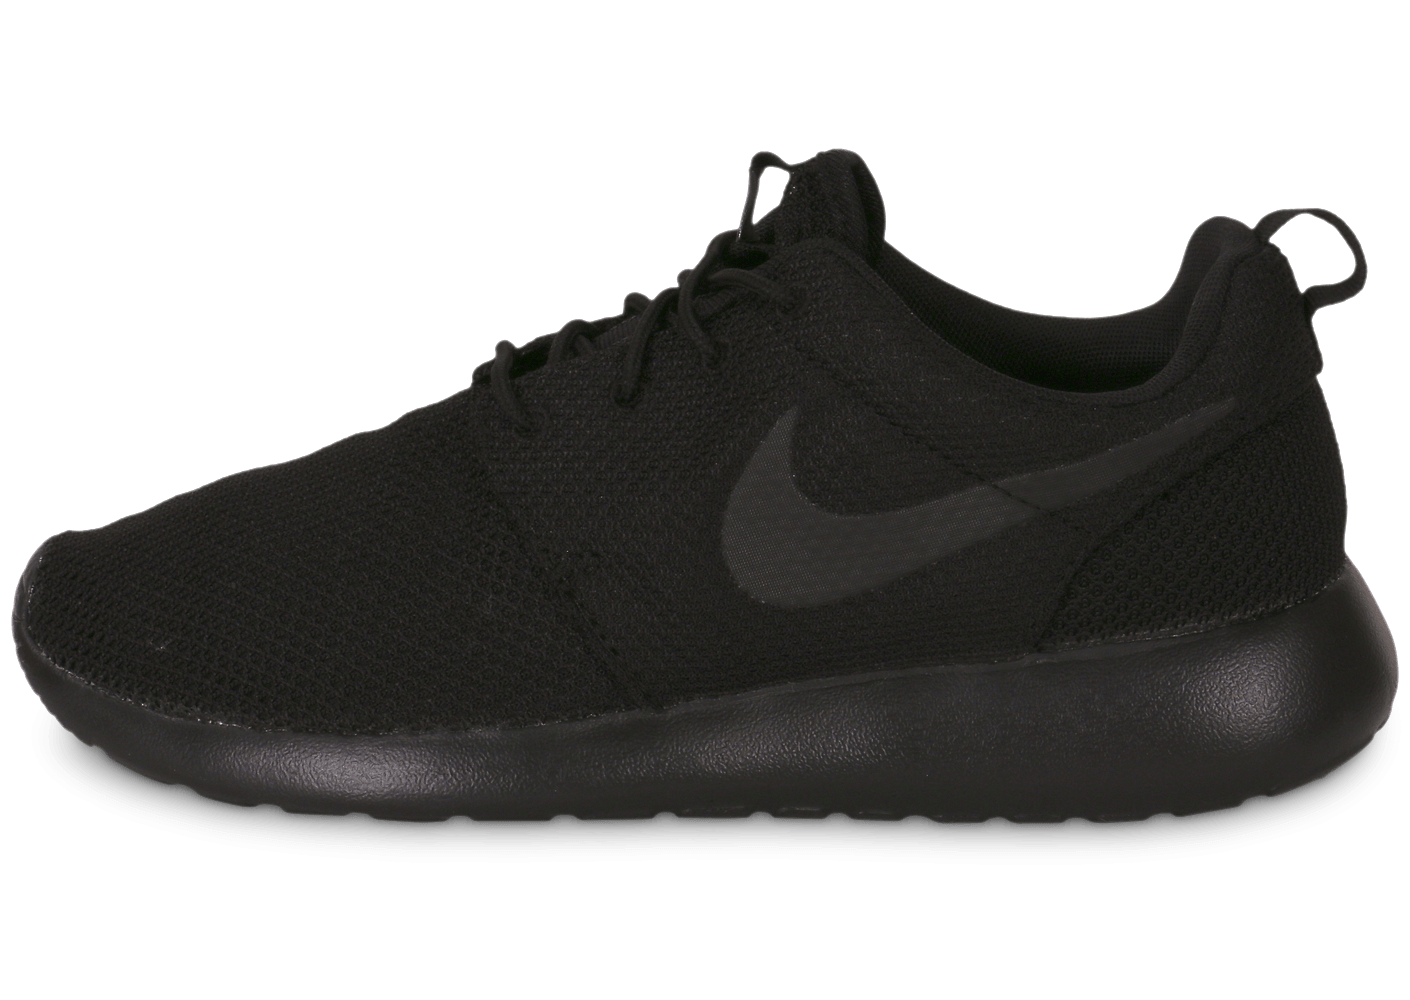 reputable site 65805 f1df2 ... coupon code for chaussures nike roshe one triple black vue avant 92905  c11ab